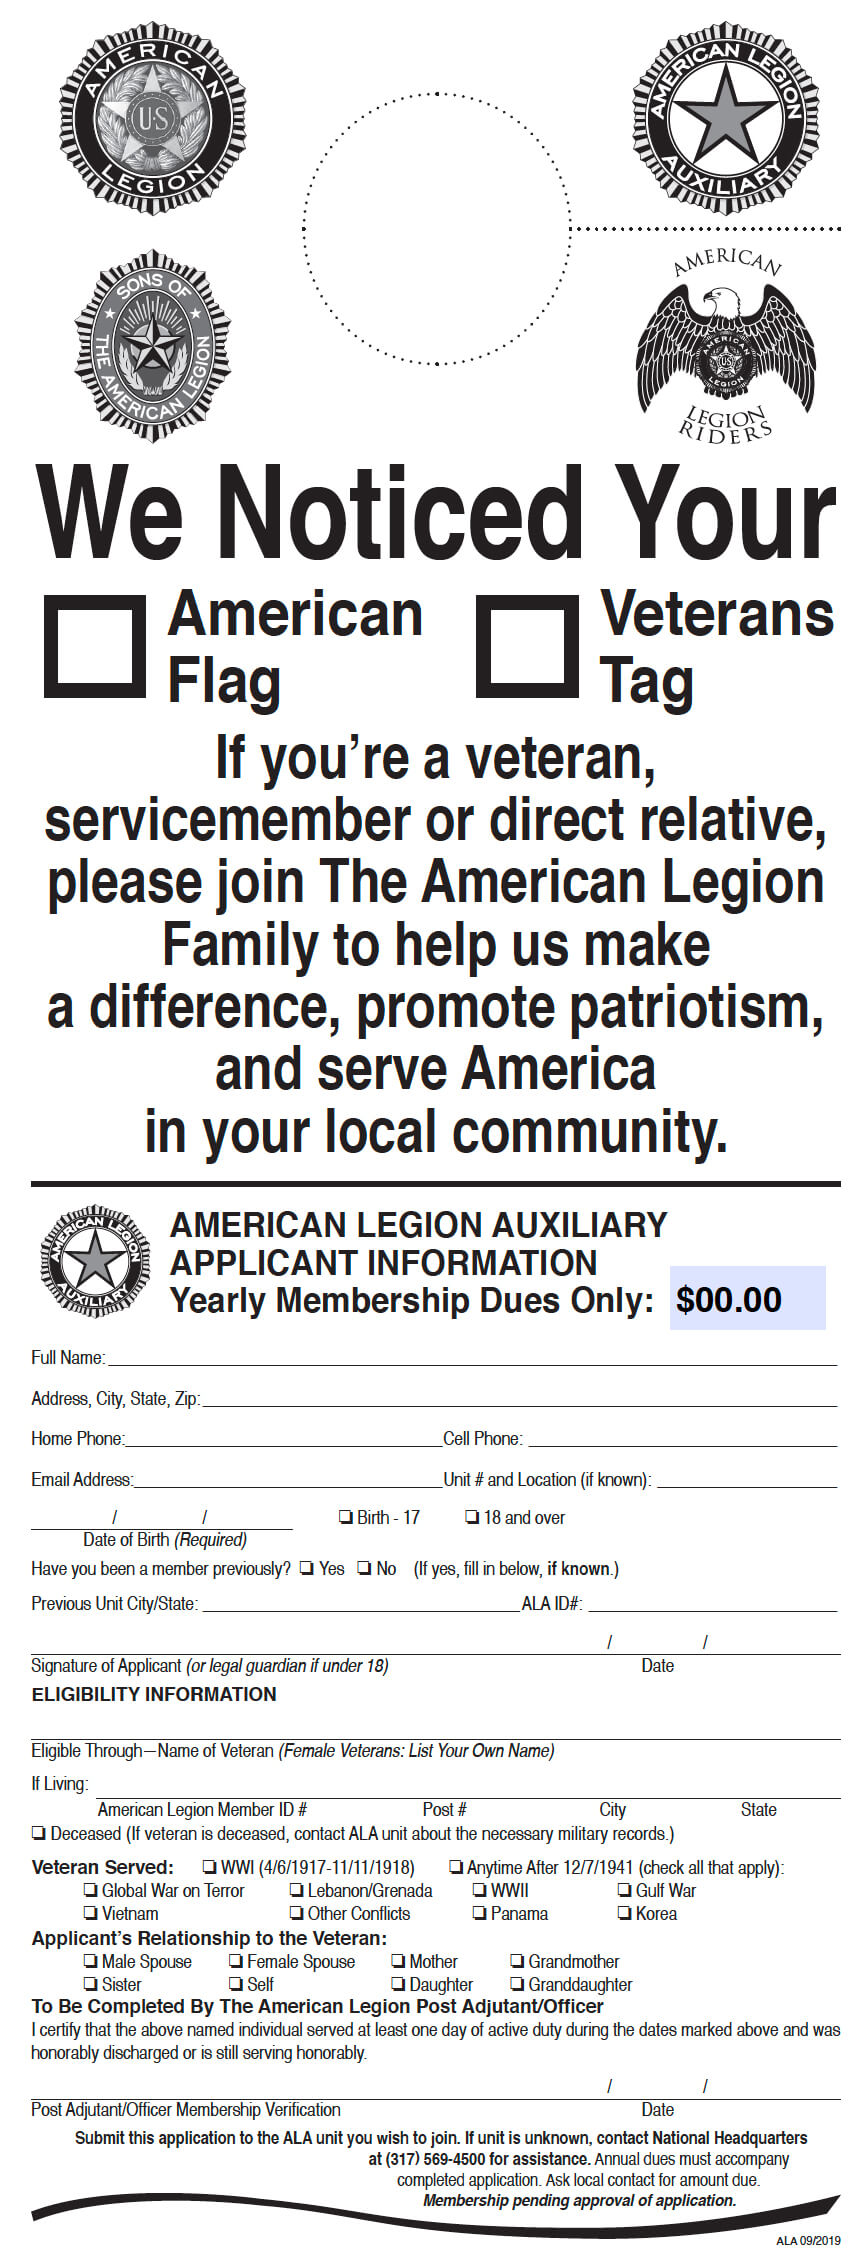 Marketing & Promotional Materials - American Legion Auxiliary Intended For American Legion Letterhead Template